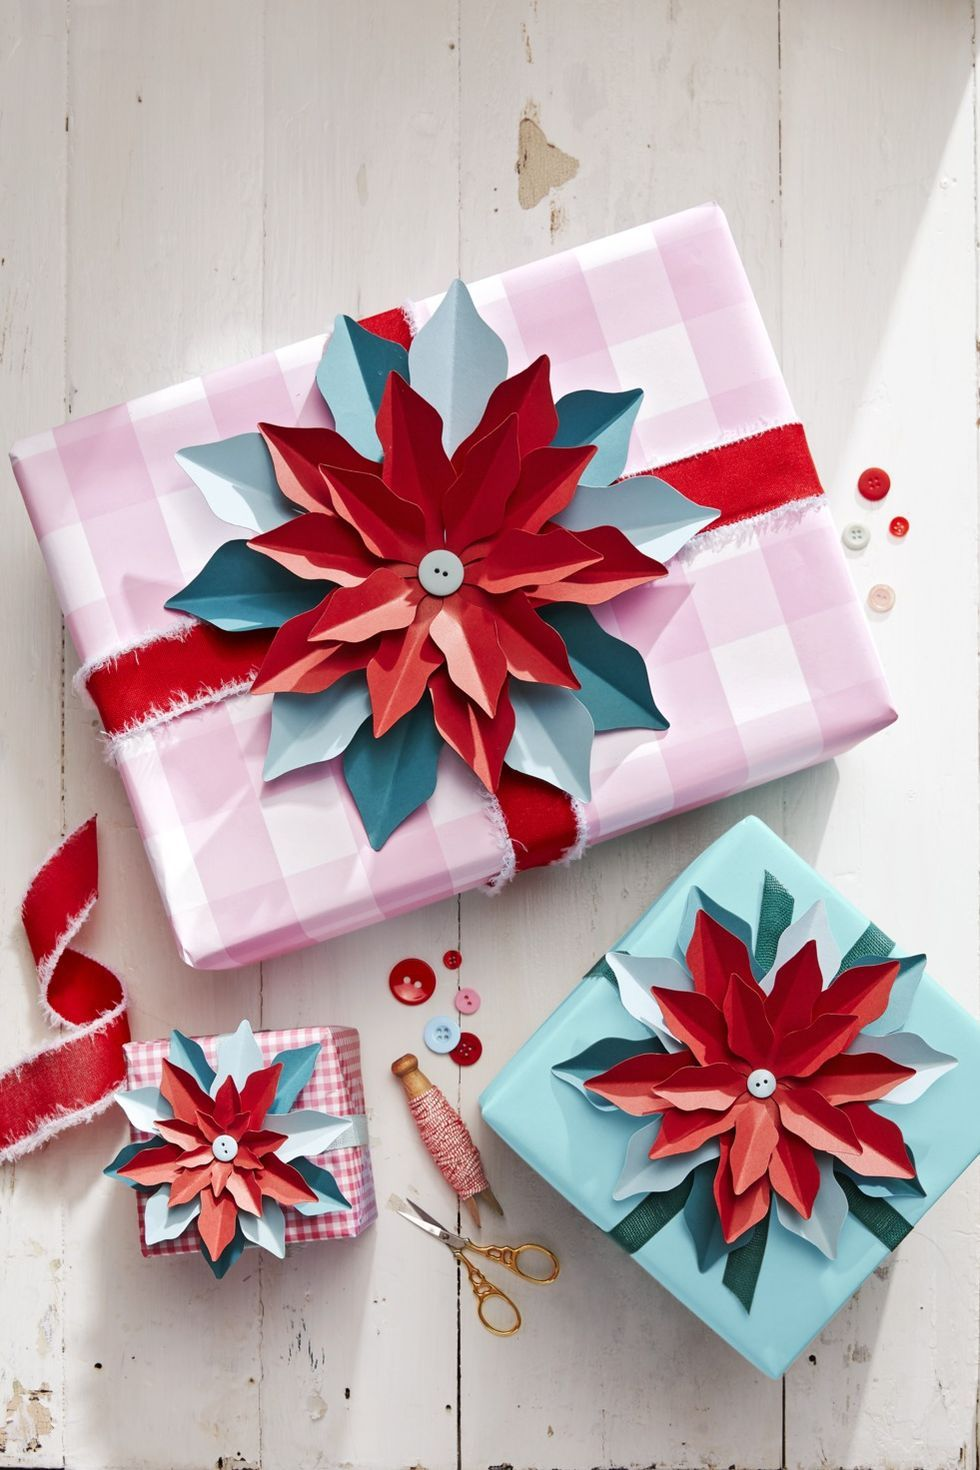 95 Diy Homemade Christmas Gifts Craft Ideas For Christmas Presents